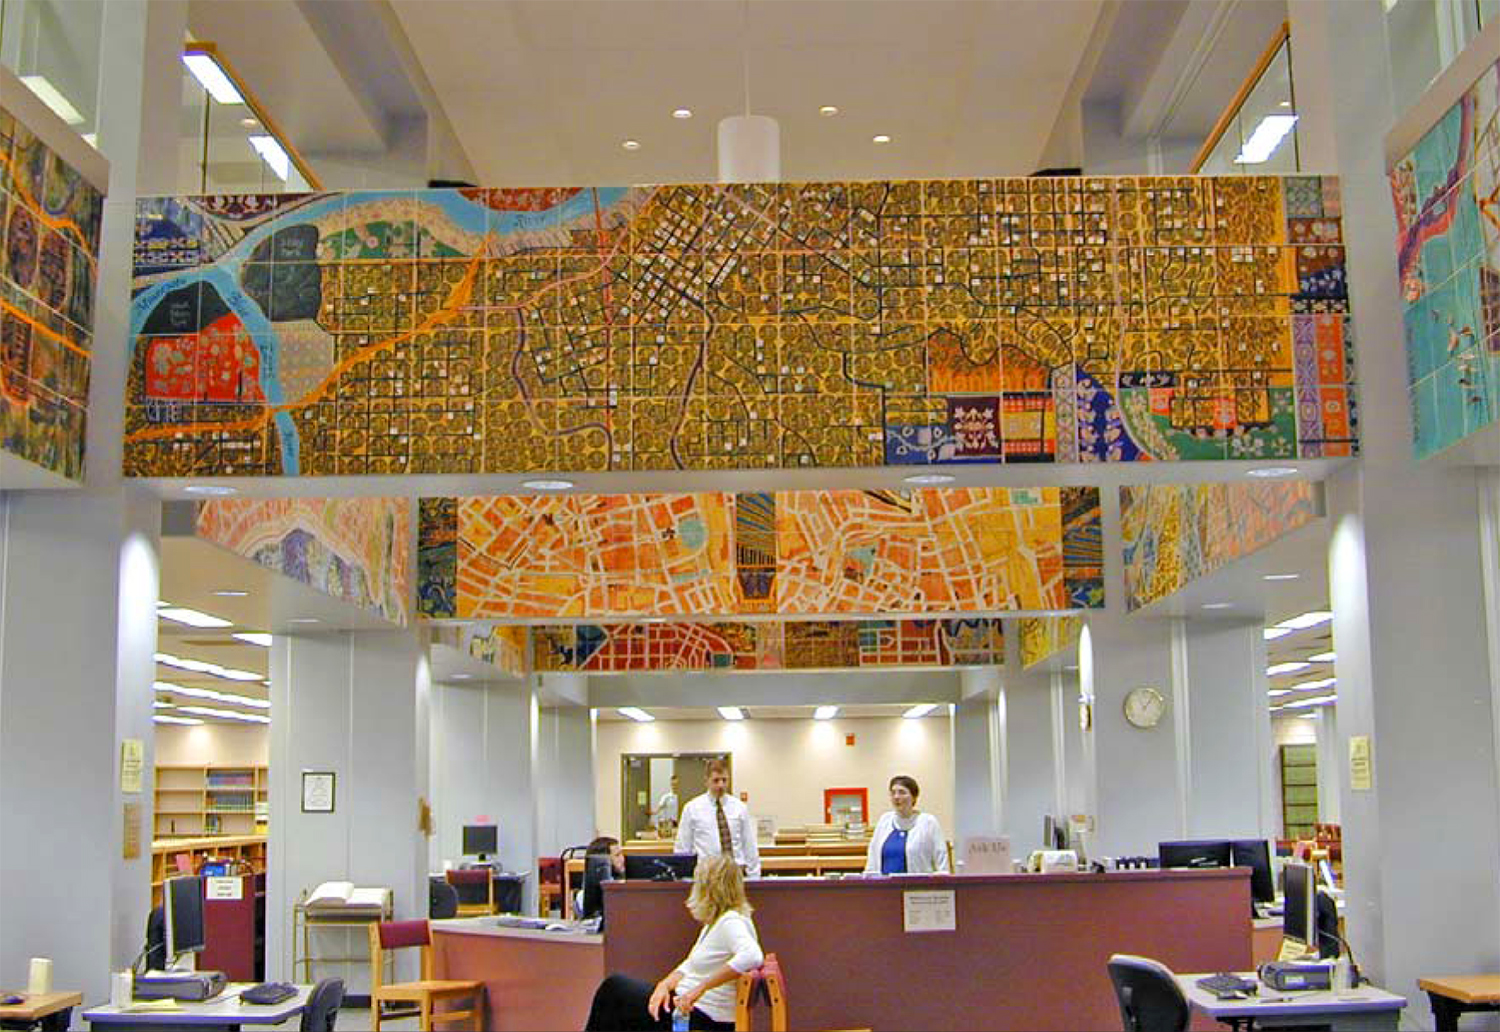 Around the World on the 44th Parallel . Twelve-panel hand-painted ceramic tile mural by Joyce Kozloff at Mankato (Minnesota) State University Library.